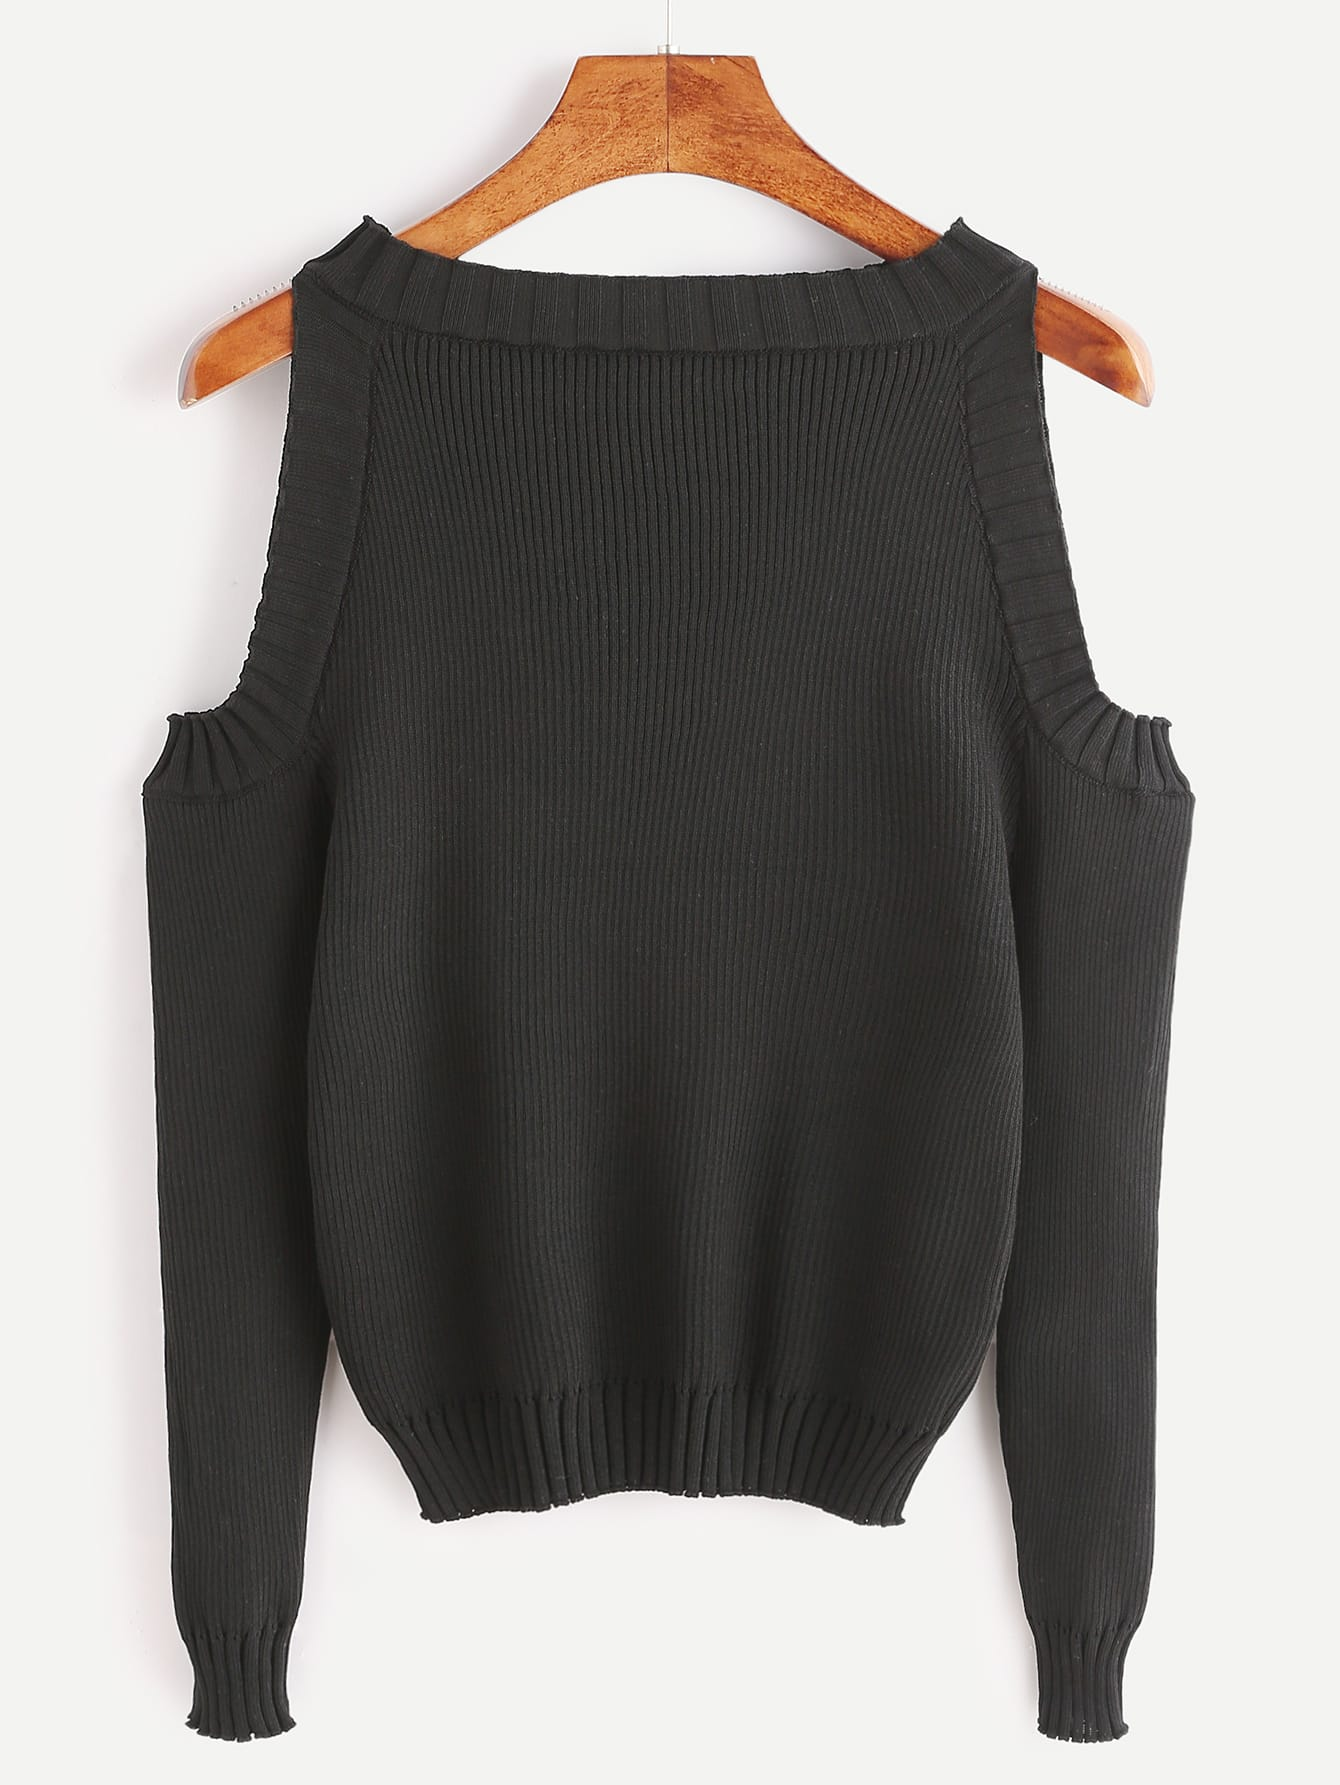 Open Shoulder Rib Knit Sweater open knit long sweater